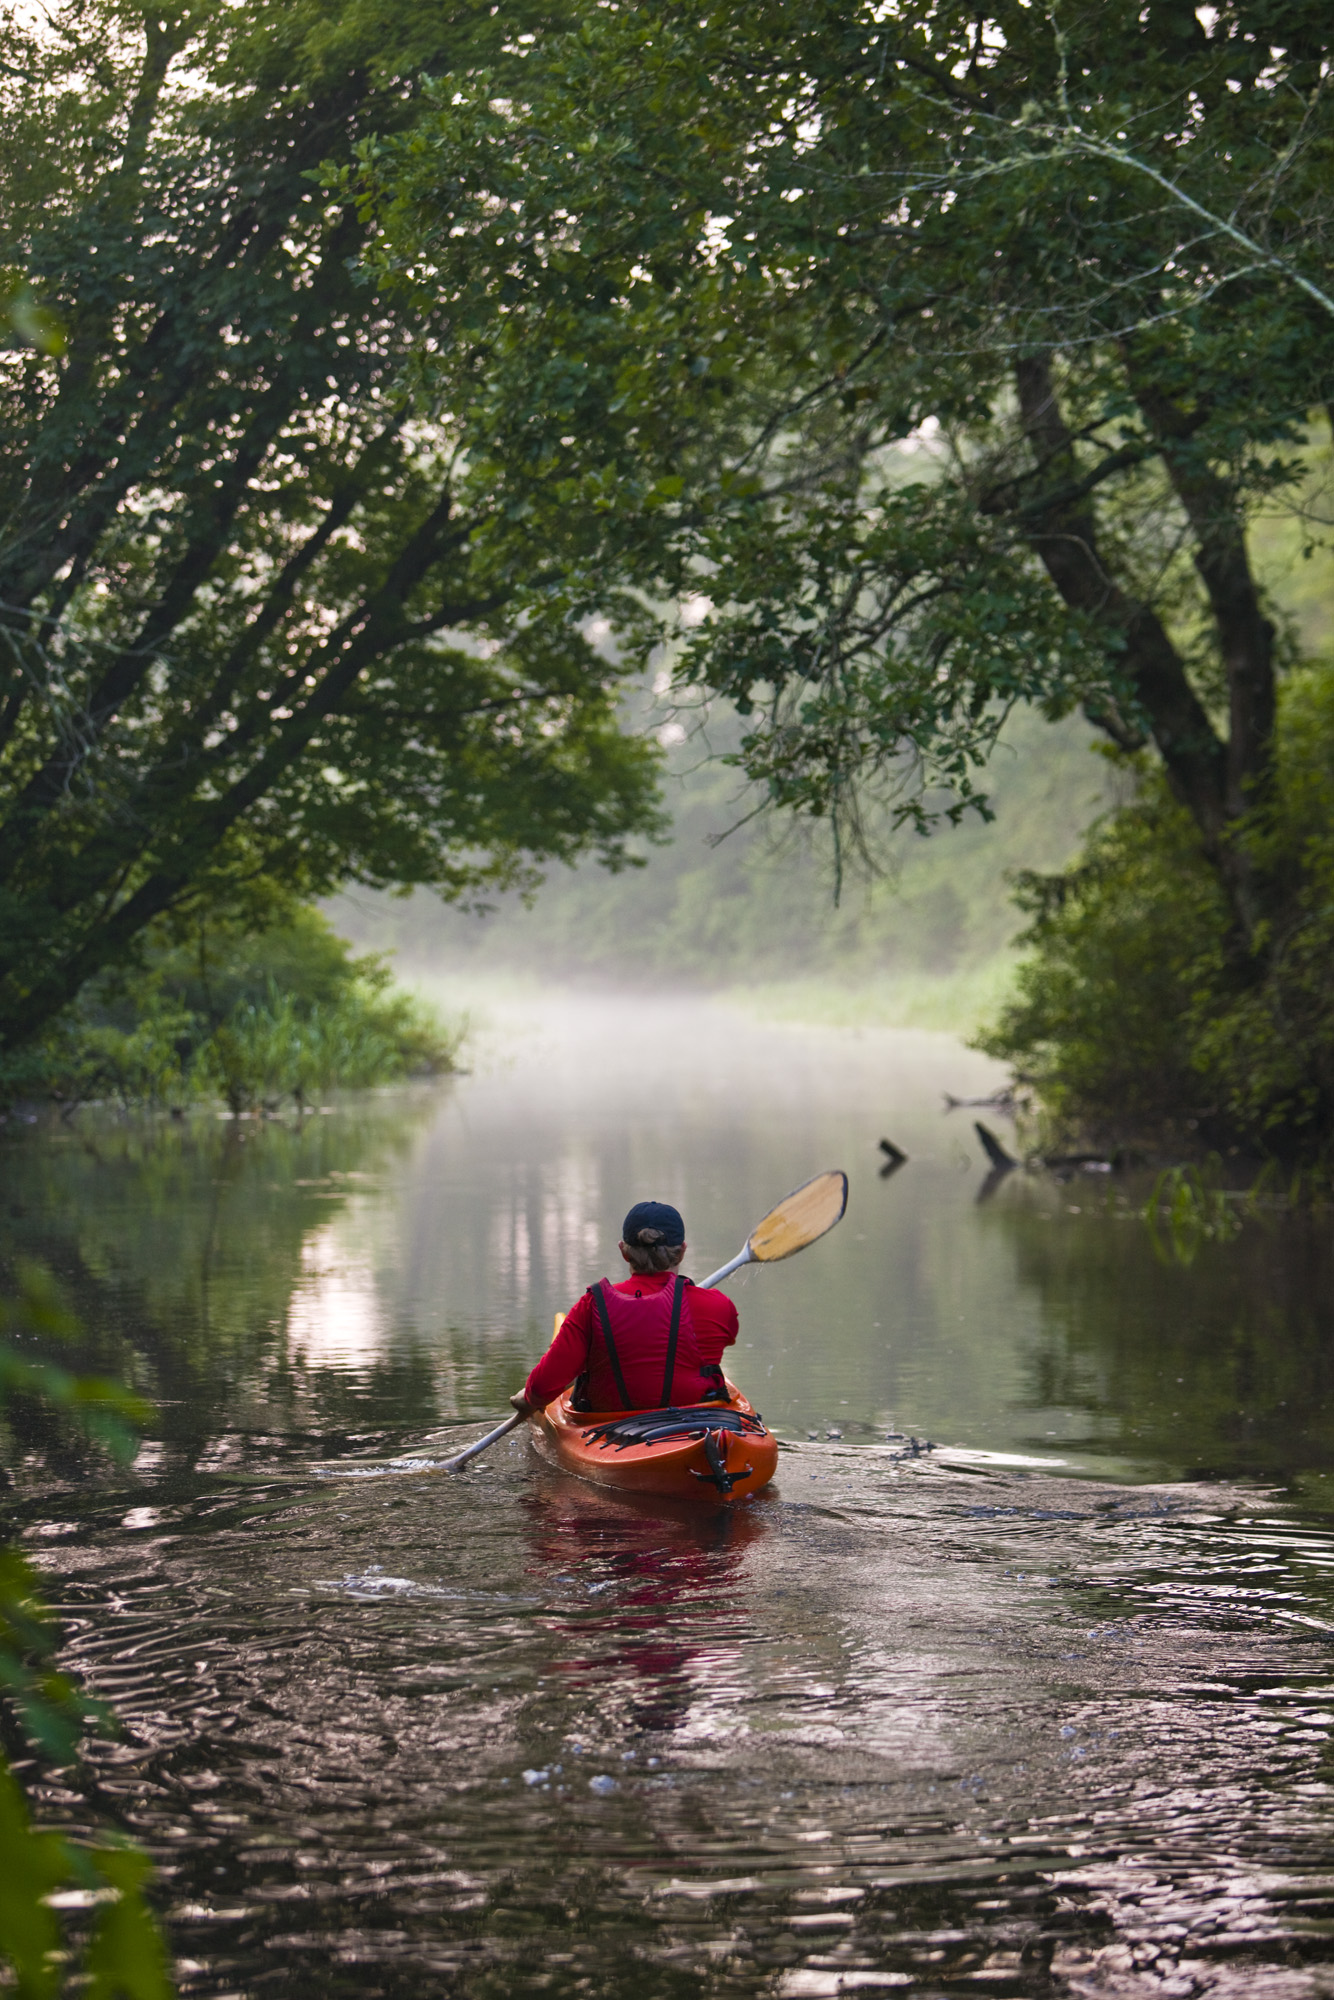 A kayaker enjoys a quiet trip down the tranquil waters of Indian Head River.